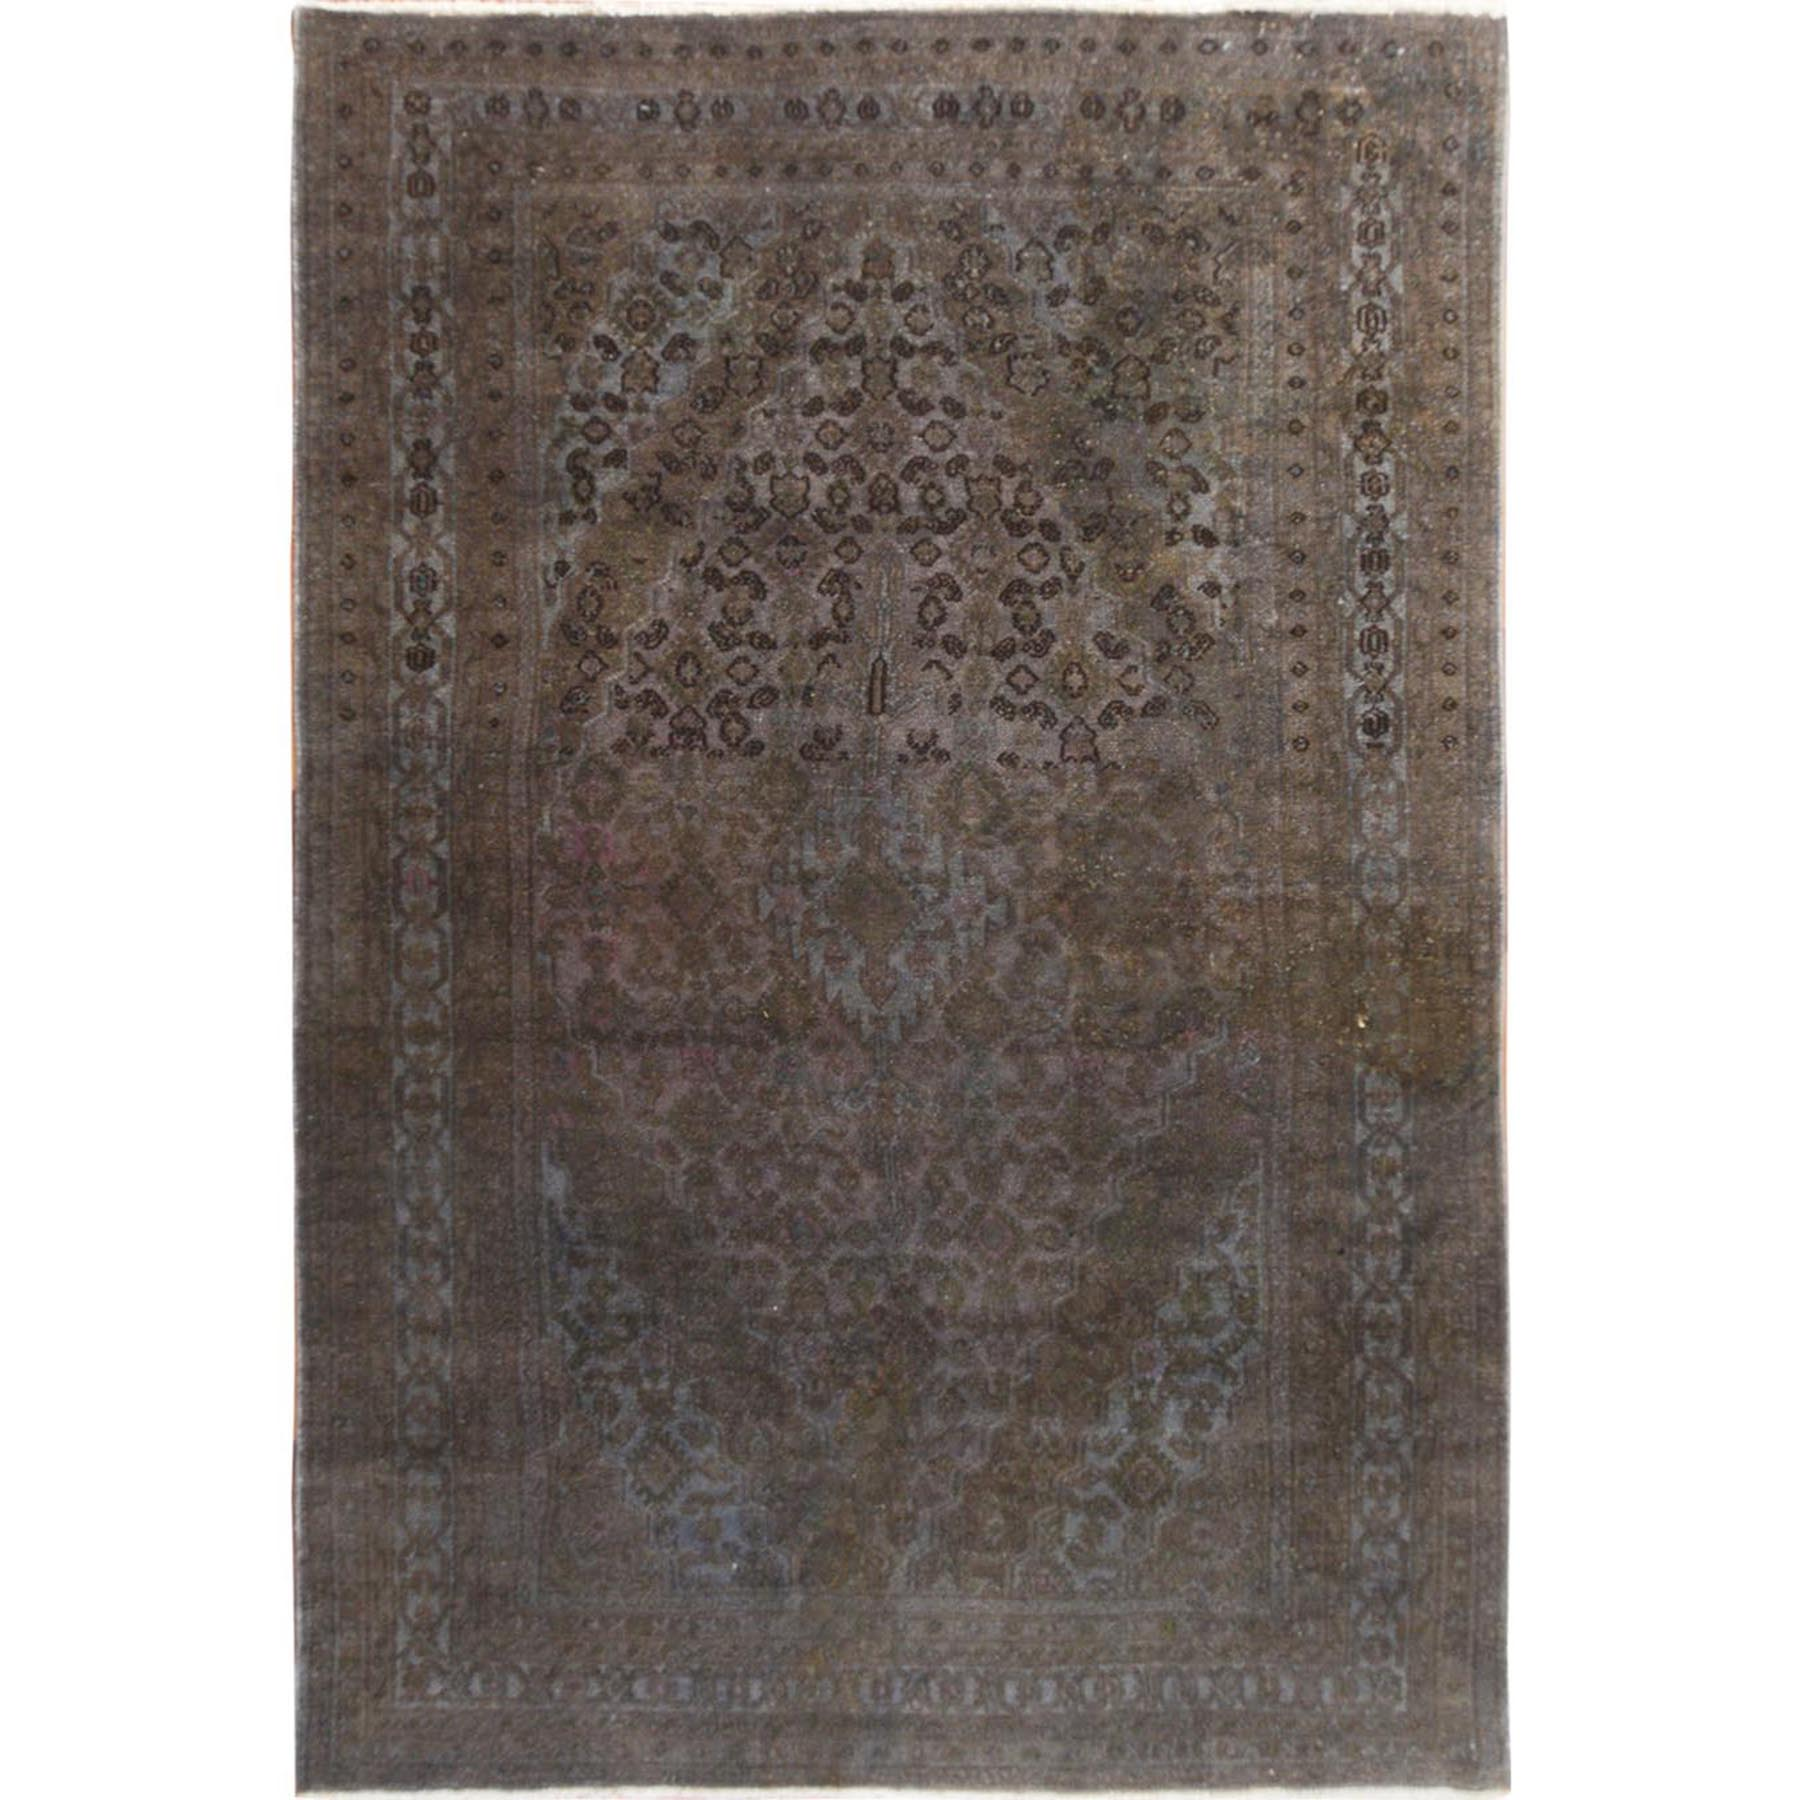 """6'5""""X9'6"""" Gray Overdyed Vintage And Worn Down Persian Bibikabad Hand Knotted Oriental Rug moae7c67"""